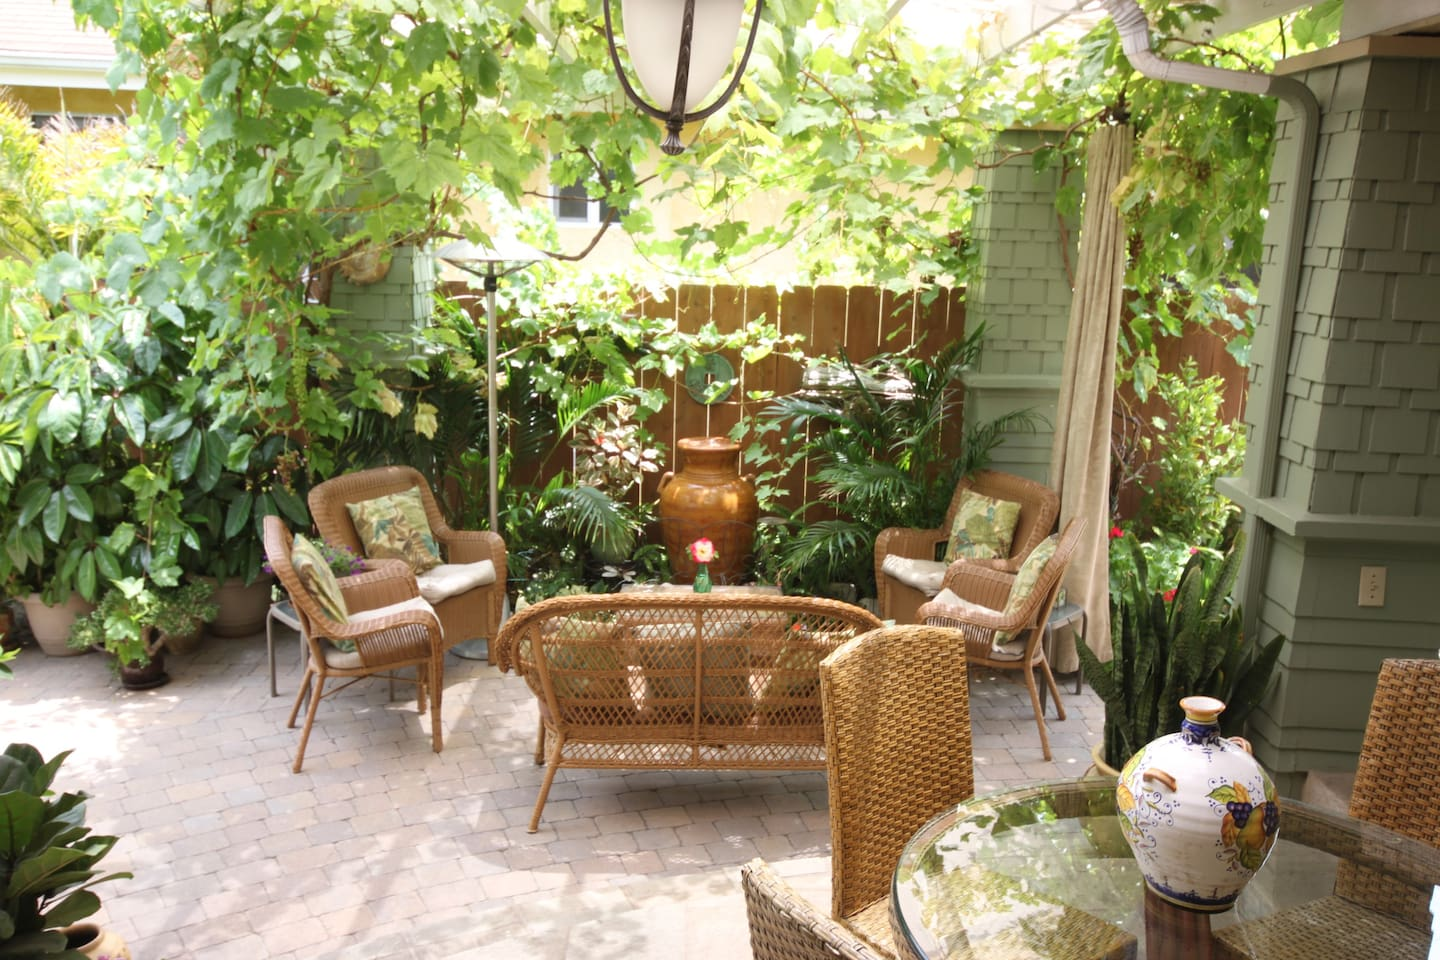 Beautiful shared outdoor living and dining area